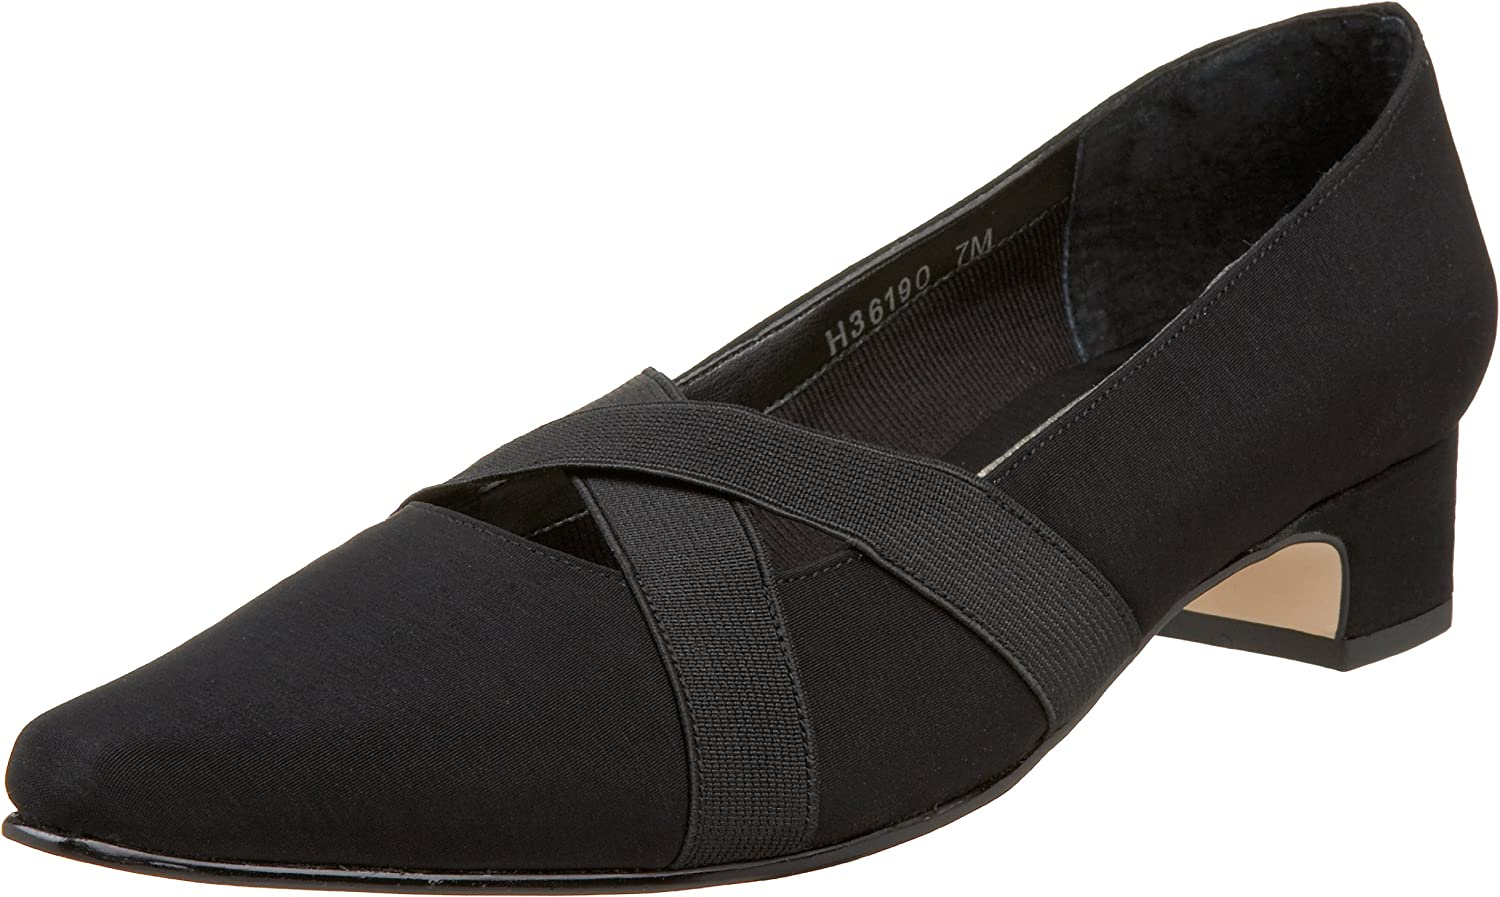 Ros Hommerson Women's Fab Dress shoes